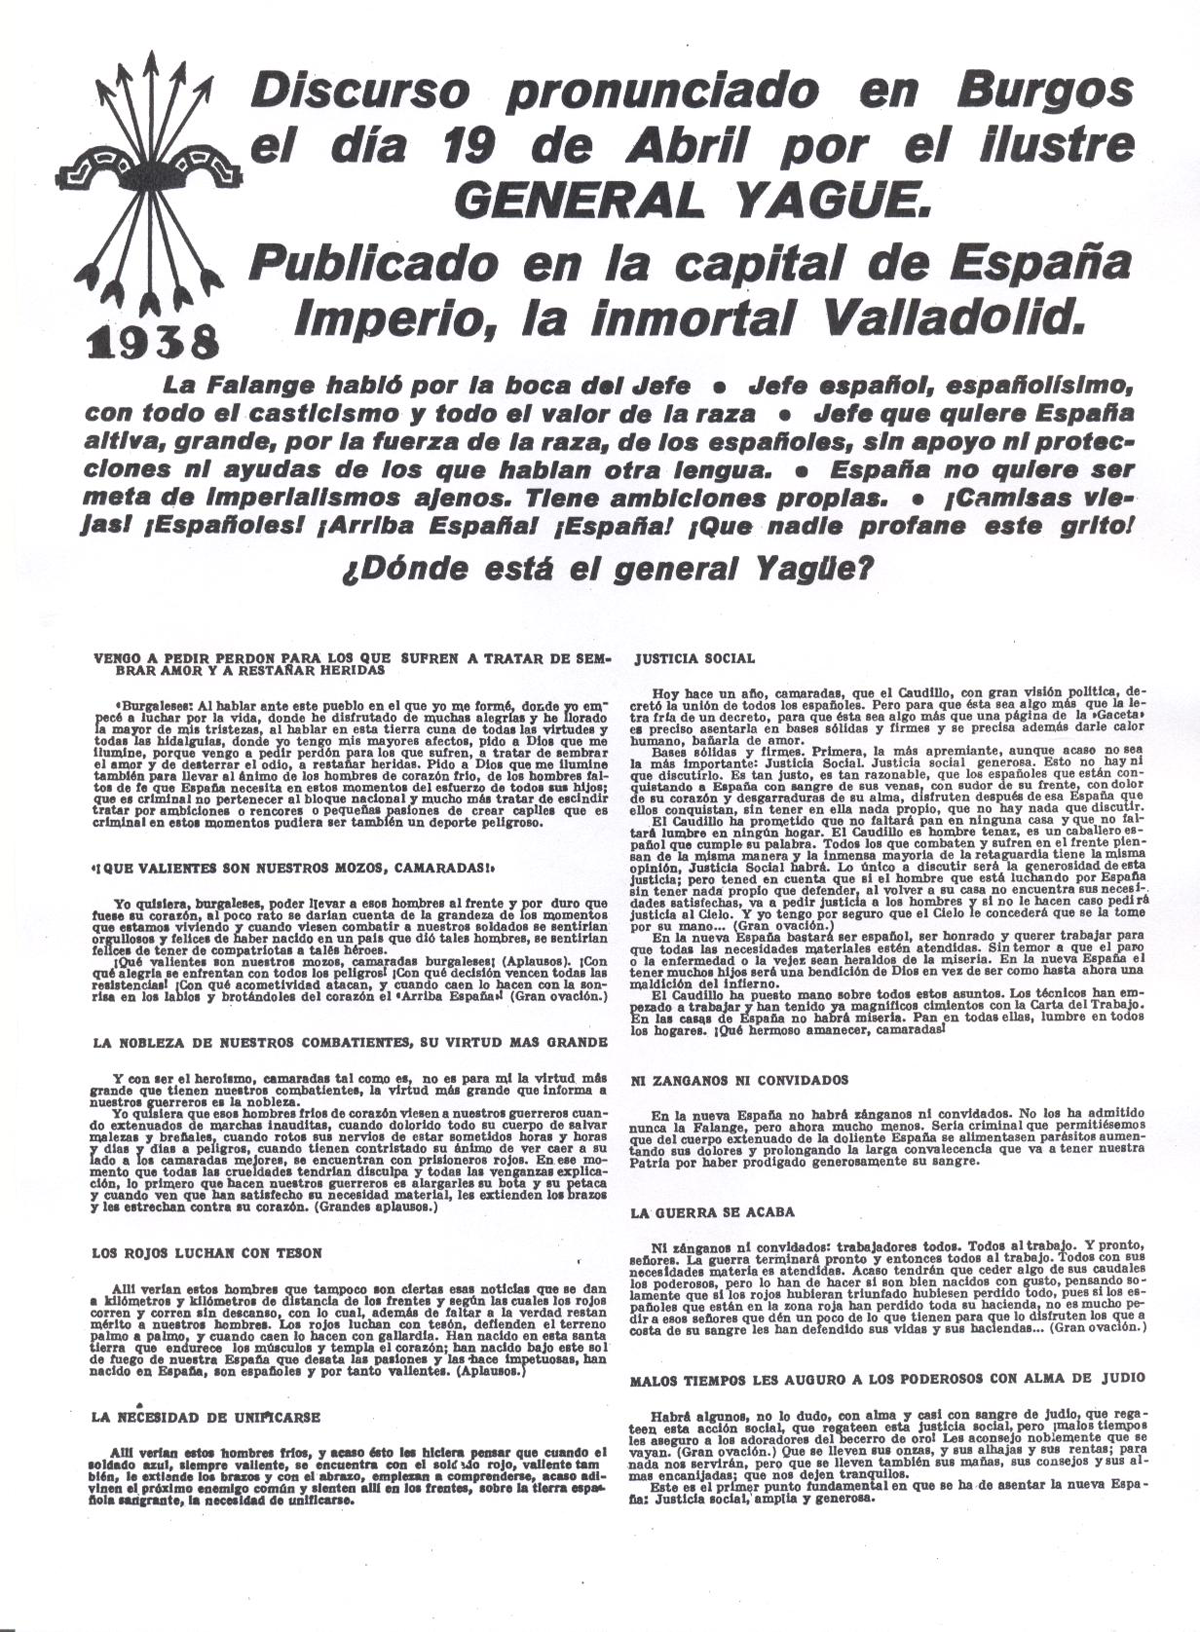 Discurso General Yagüe - abril 1938 (1)